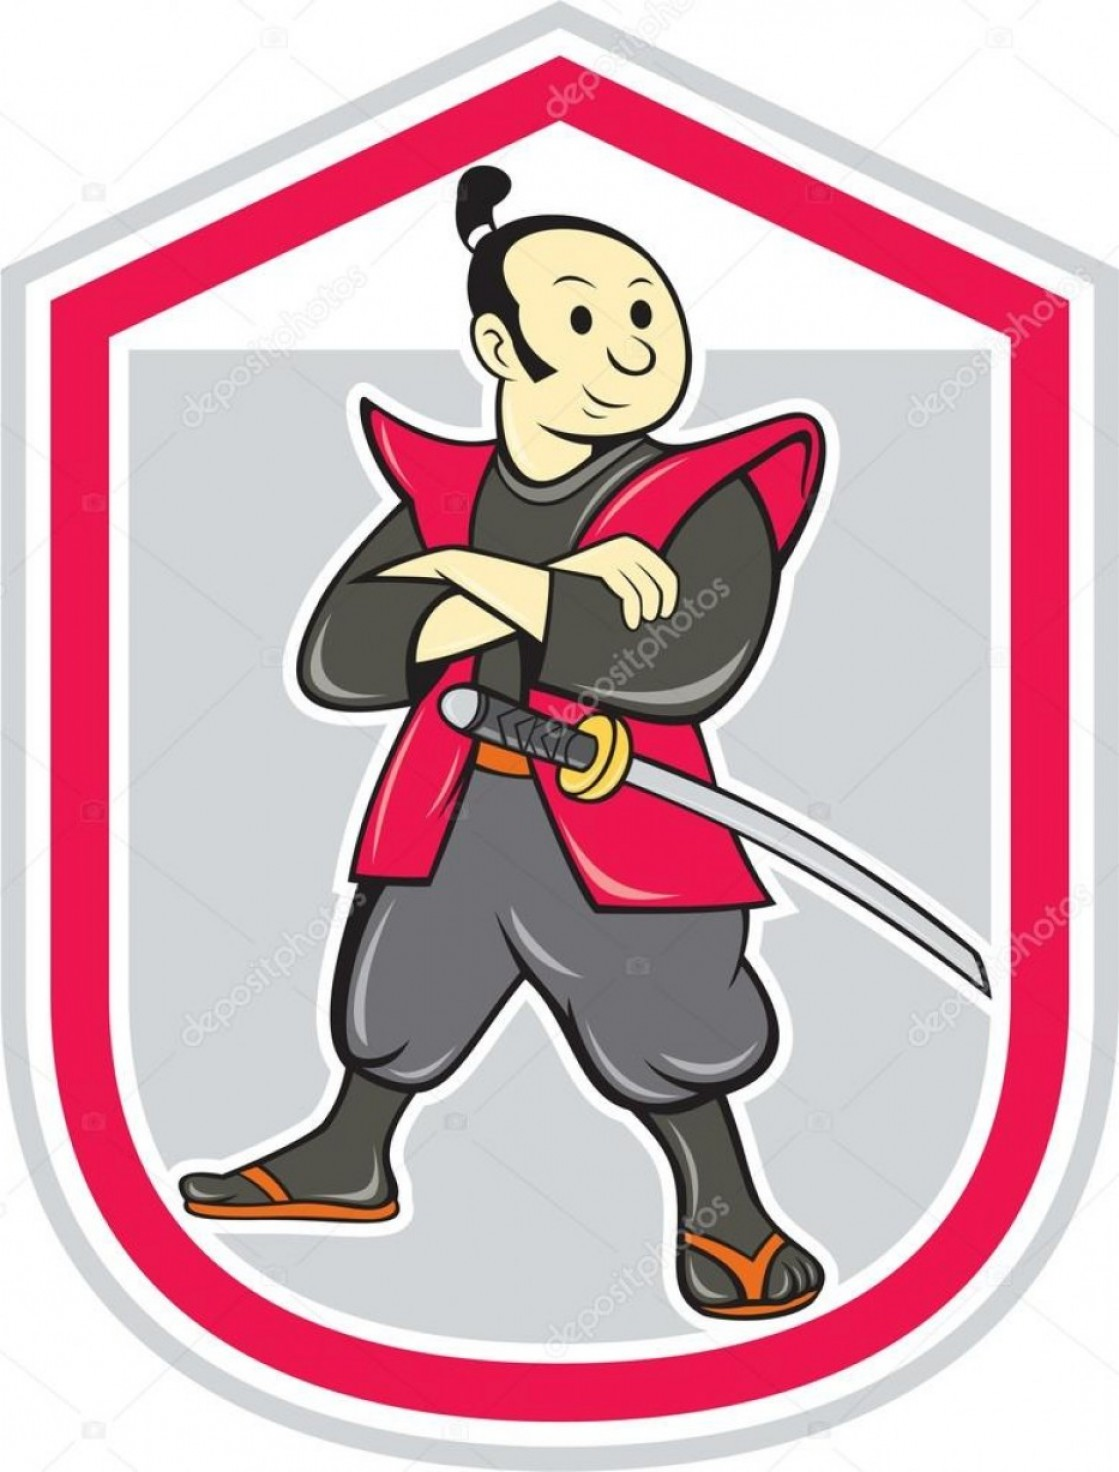 Samurai Warrior Vector: Stock Illustration Samurai Warrior Arms Folded Shield